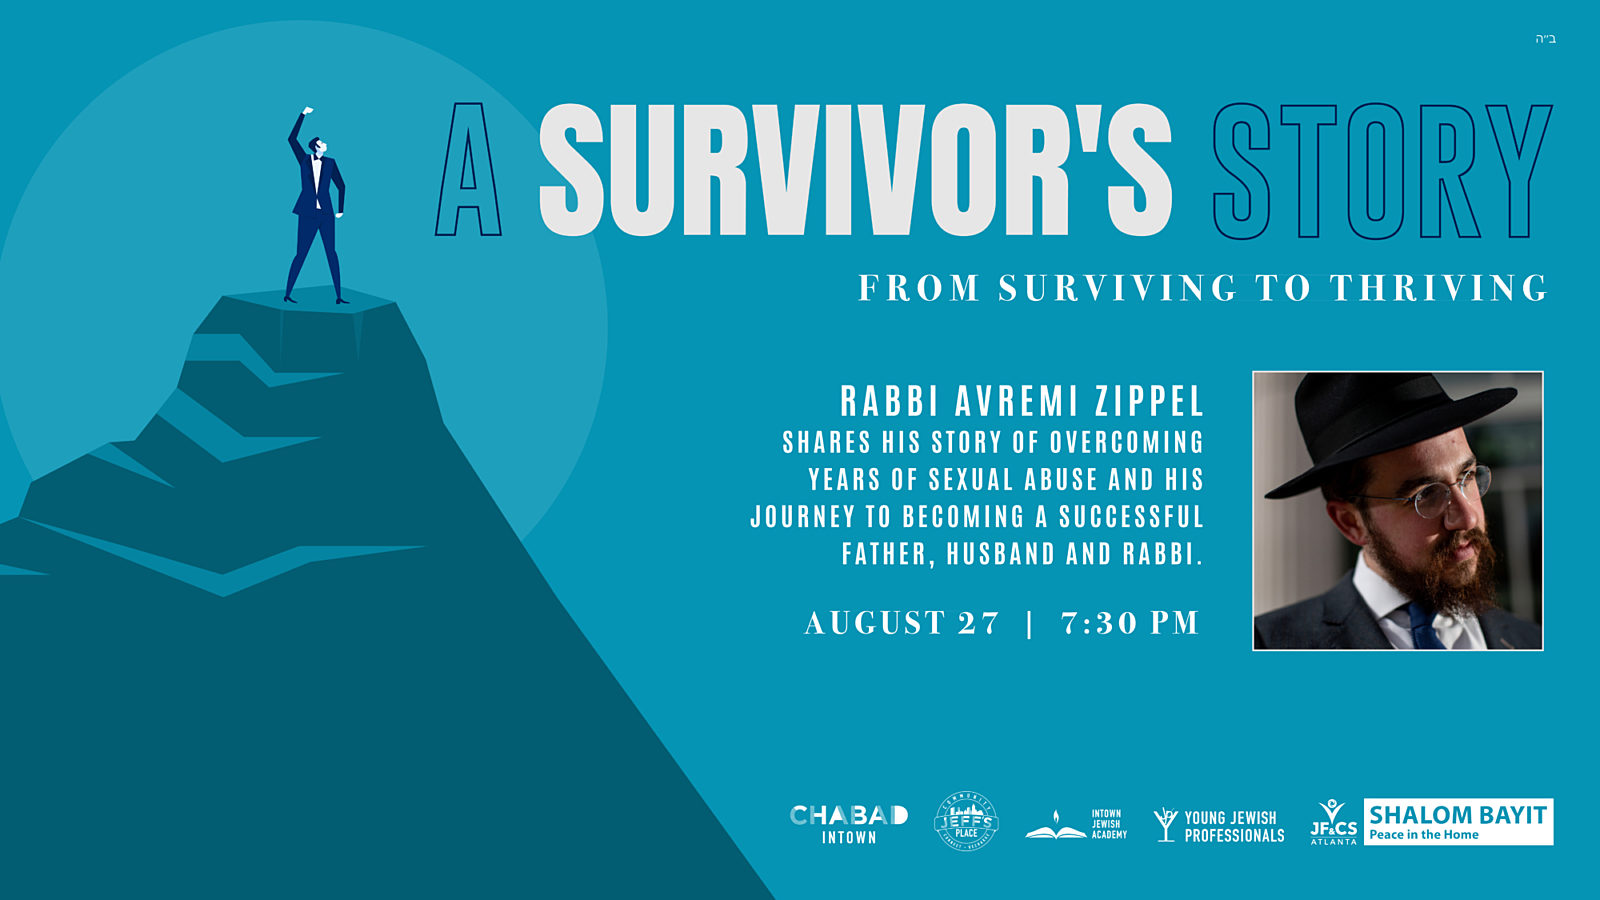 A Survivor's Story: From Surviving to Thriving